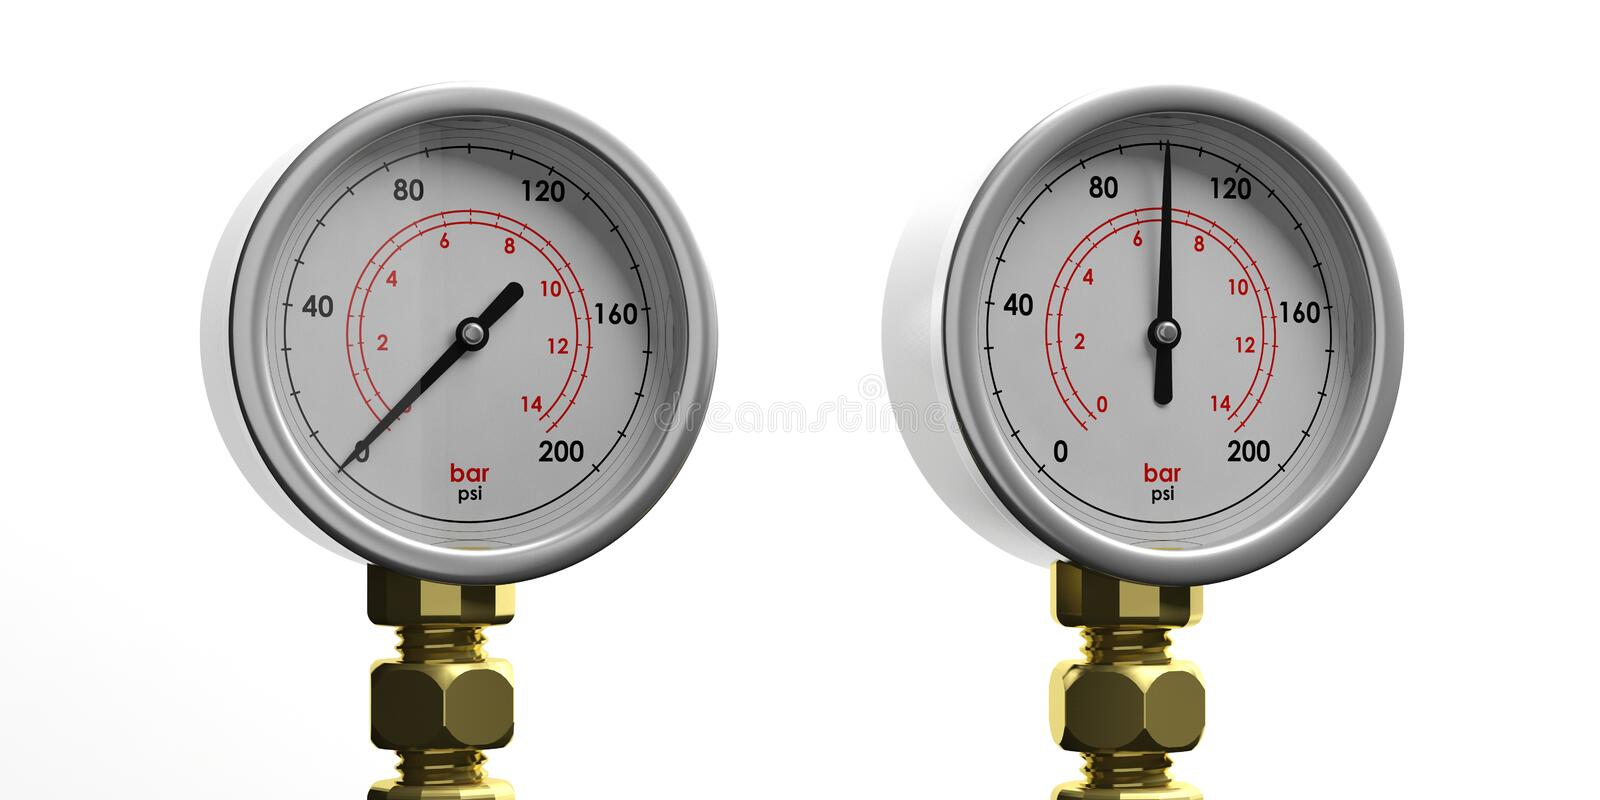 Industrial pressure gauges isolated on white background, front view. 3d illustration stock illustration